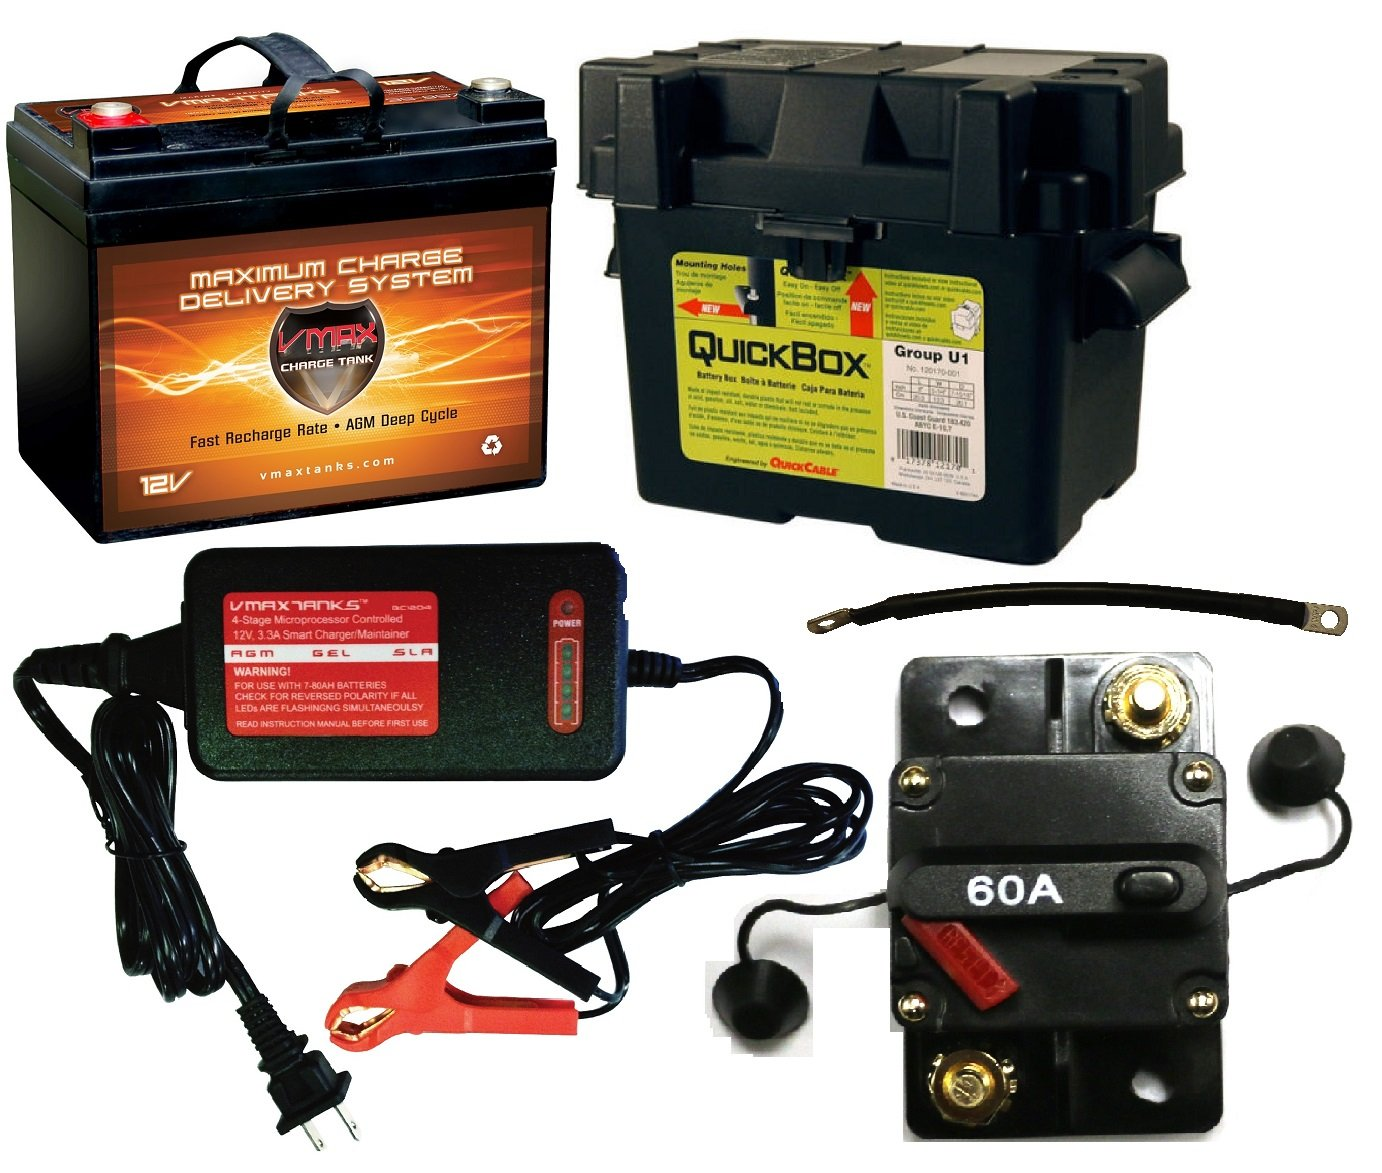 Boat Battery Kit: VMAX 12V 35ah AGM Battery + Quickbox Marine Battery Box + Waterproof Circuit Breaker + VMAX 12V 4-Stage Smart Charger + (2) 9'' 100% Copper Battery Cables. AGM 35ah Battery Kit Ideal for Boats 18-35 pound thrust motors, Minnkota, Cobra, S by VMAXTANKS